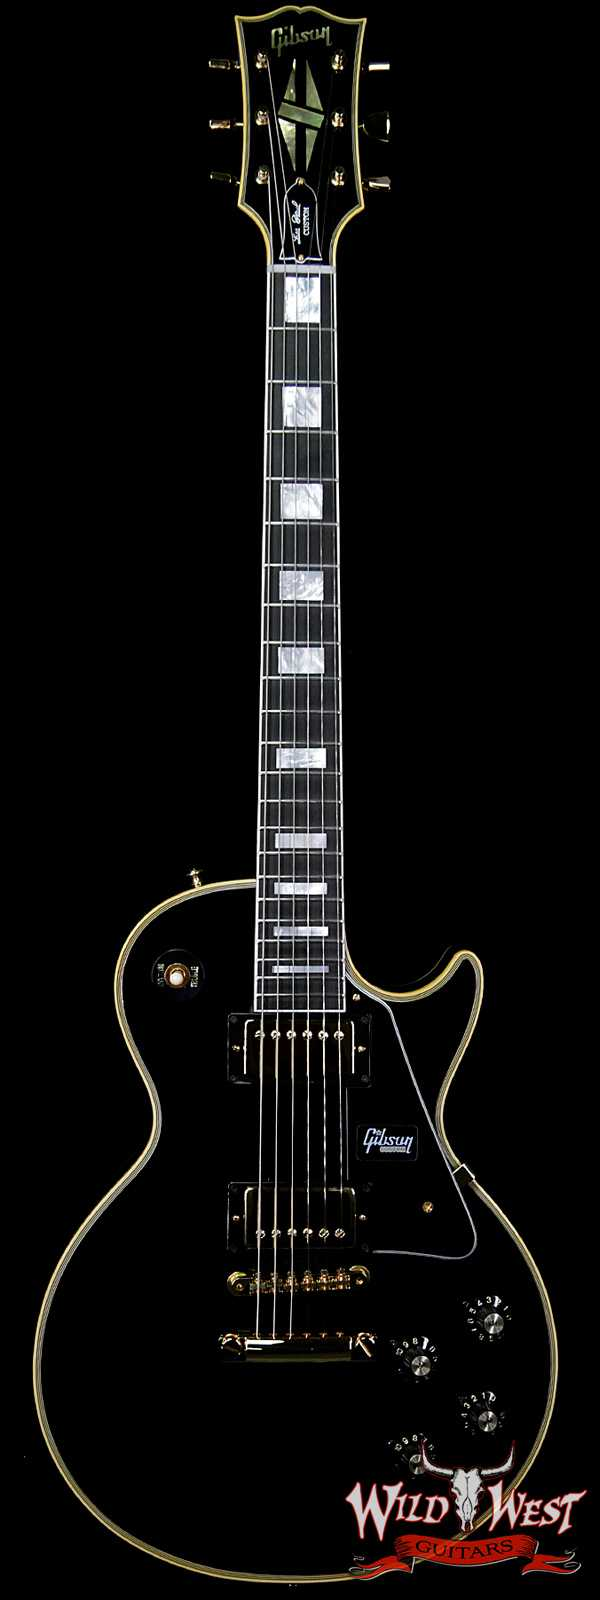 Gibson Custom Shop 1968 Les Paul Custom Reissue Gloss Ebony Fingerboard Ebony (Black) 9.00 LBS